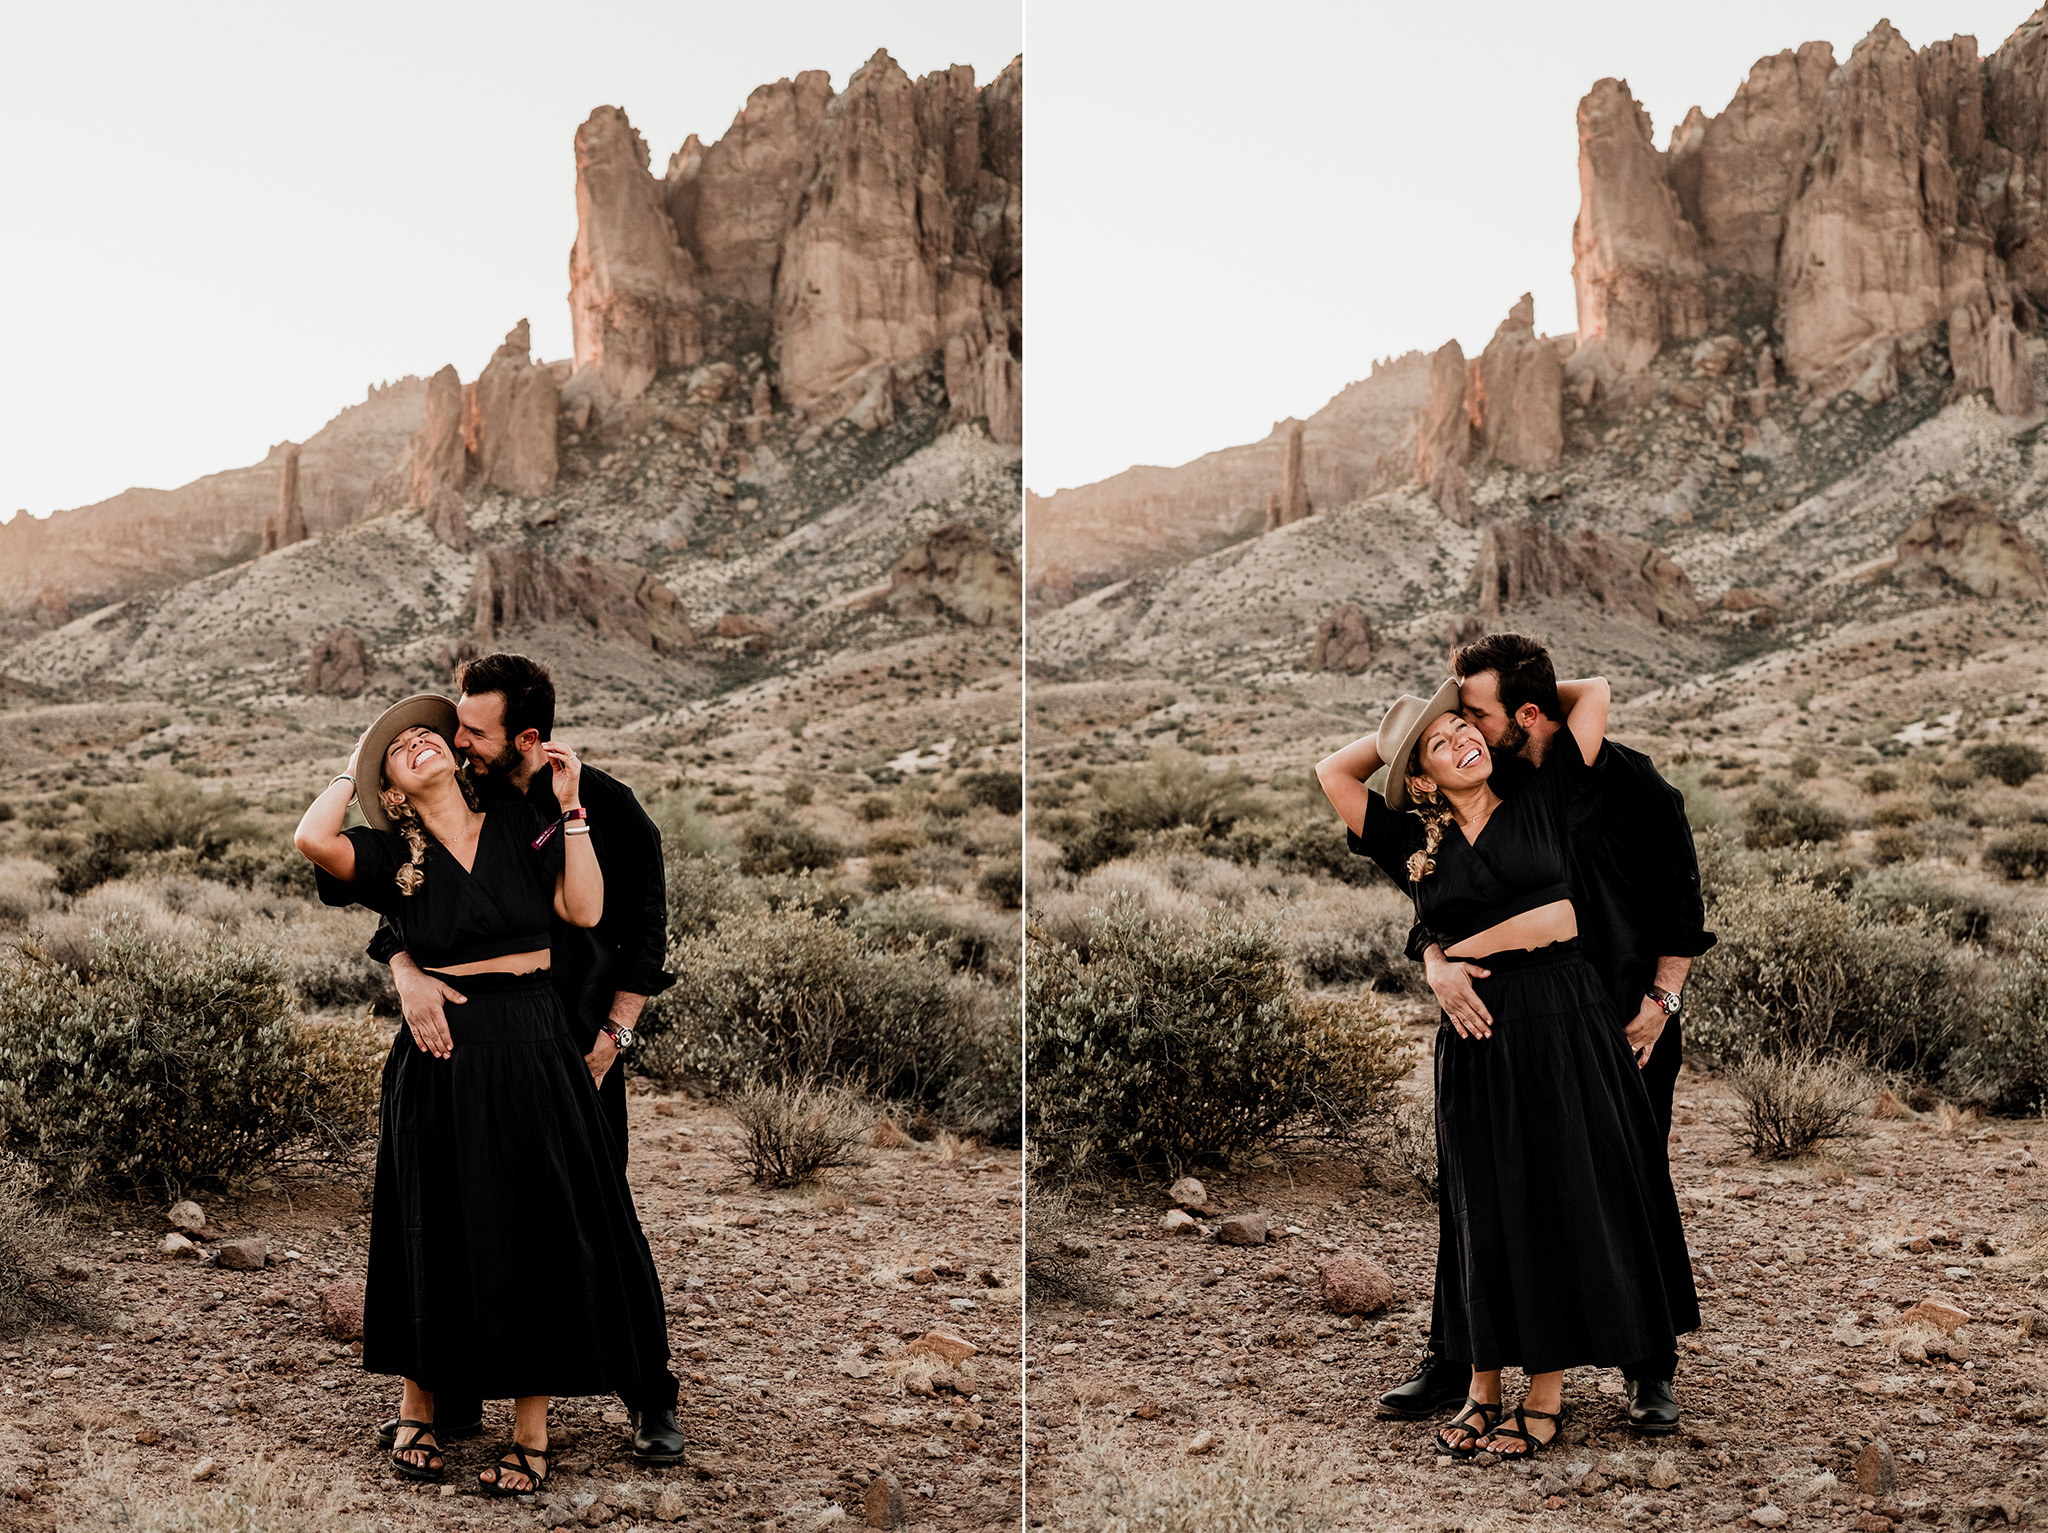 Arizona-Desert-Intimate-Wedding-Photographer-Lost-Dutchman-State-Park (21).jpg